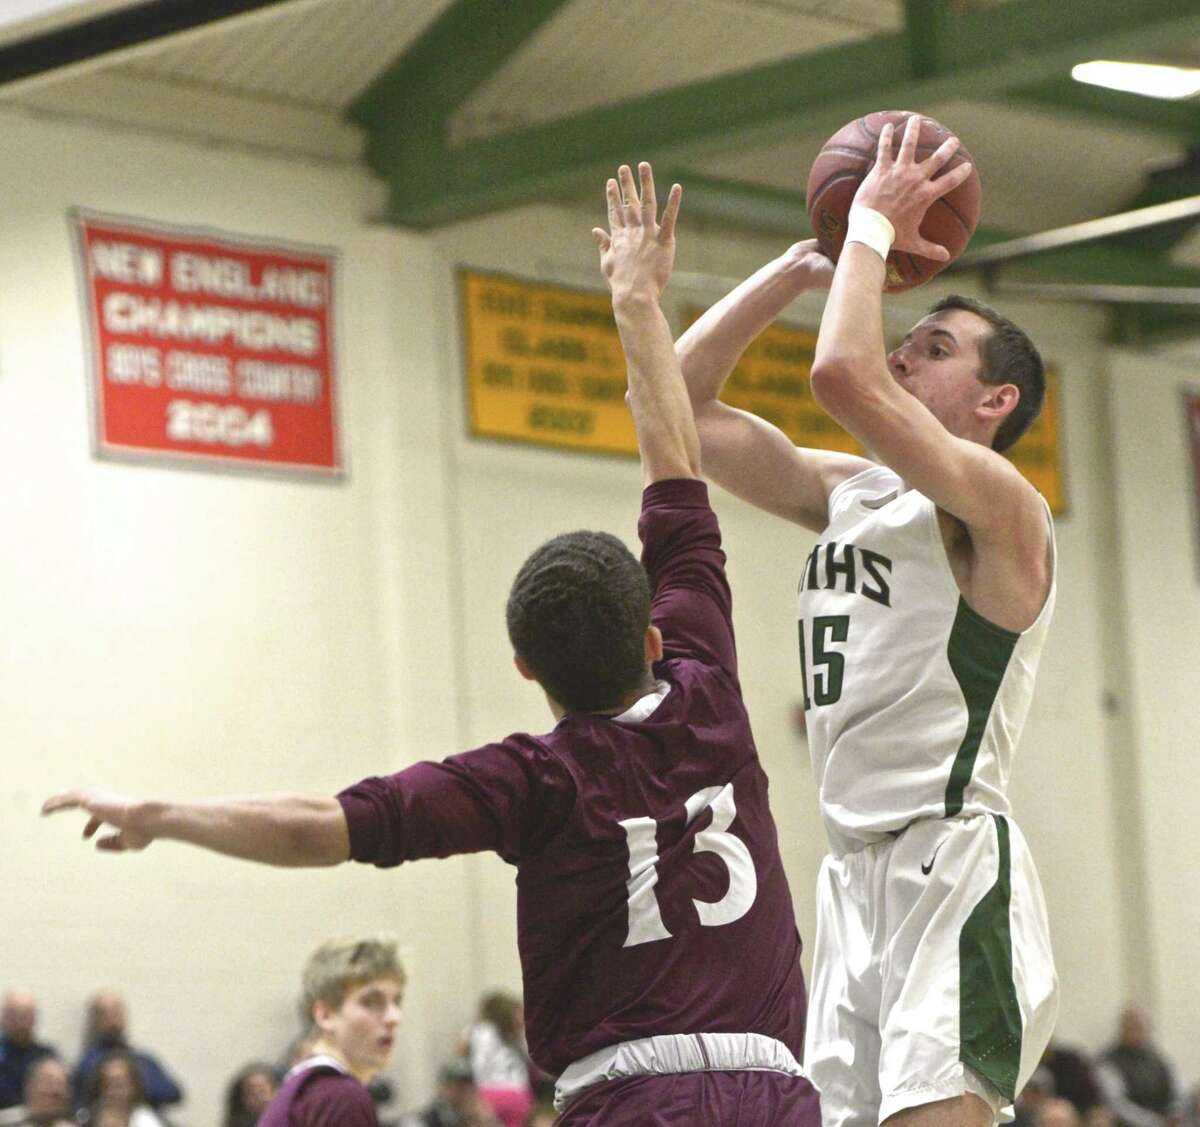 New Milford's Nicolas Maiurro (15) shoots over Bethel's Tyler Bowe (15) in the boys basketball game between Bethel and New Milford high schools, Friday night, January 4, 2019, at New Milford High School, New Milford, Conn.